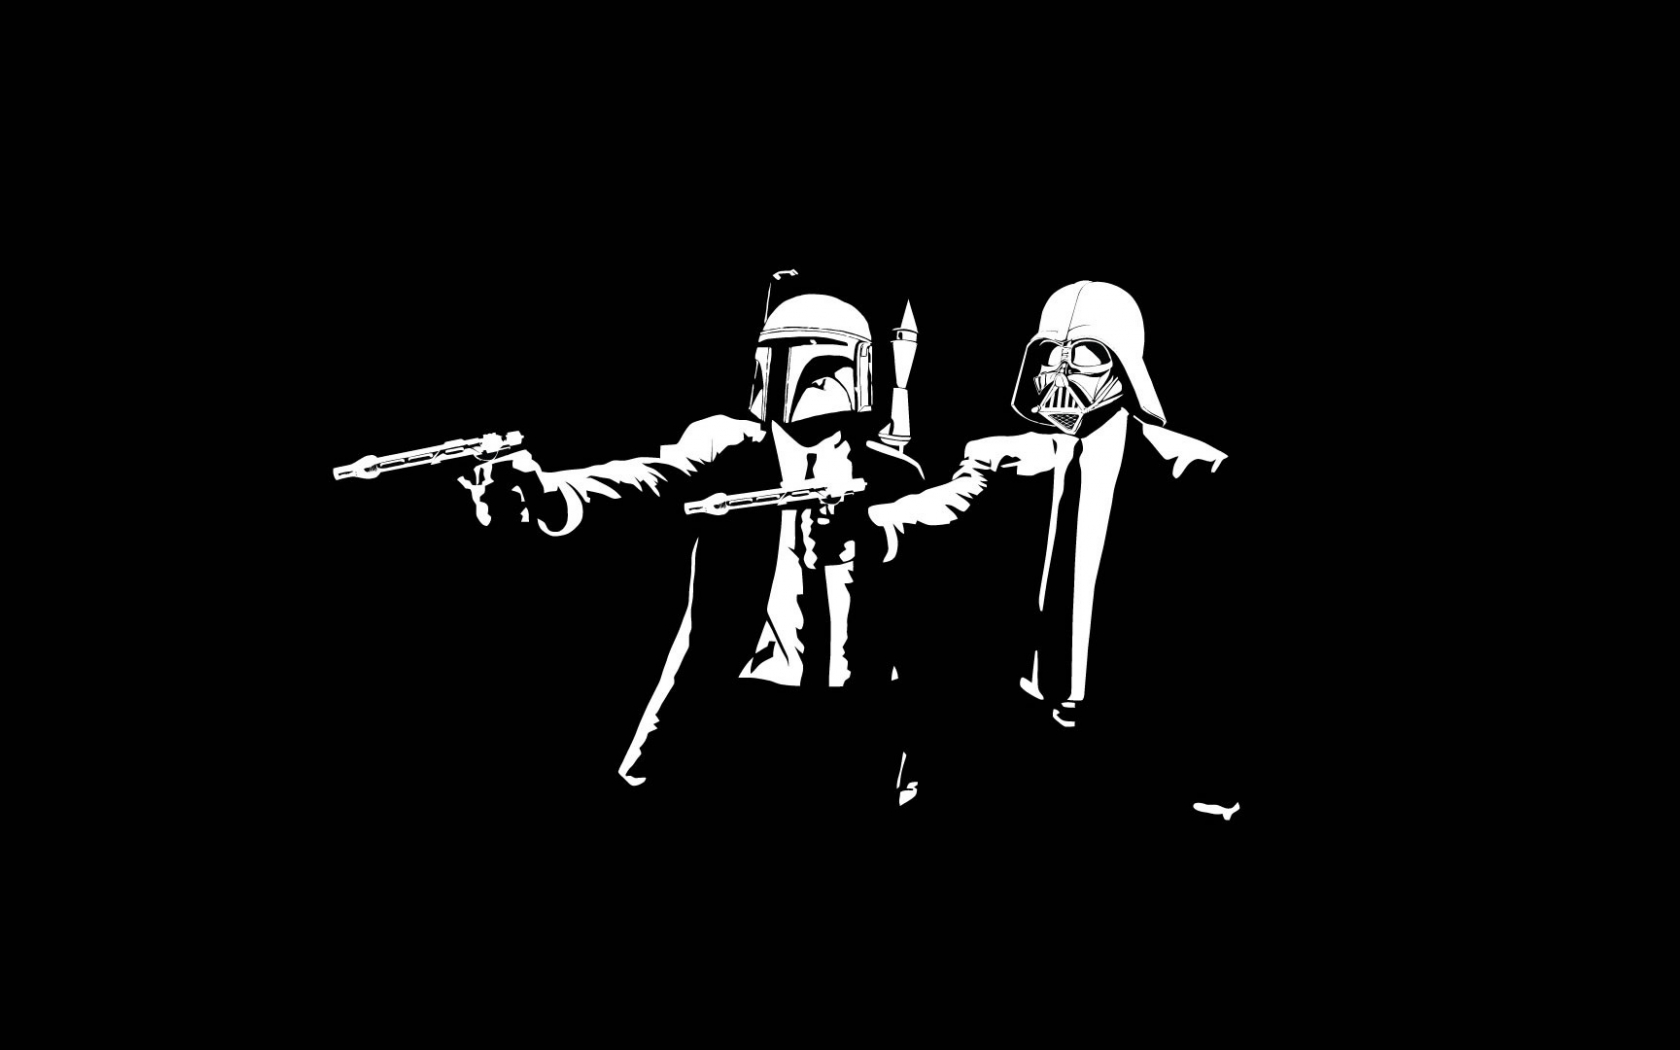 Free Download Star Wars Pulp Fiction Boba Fett Darth Vader